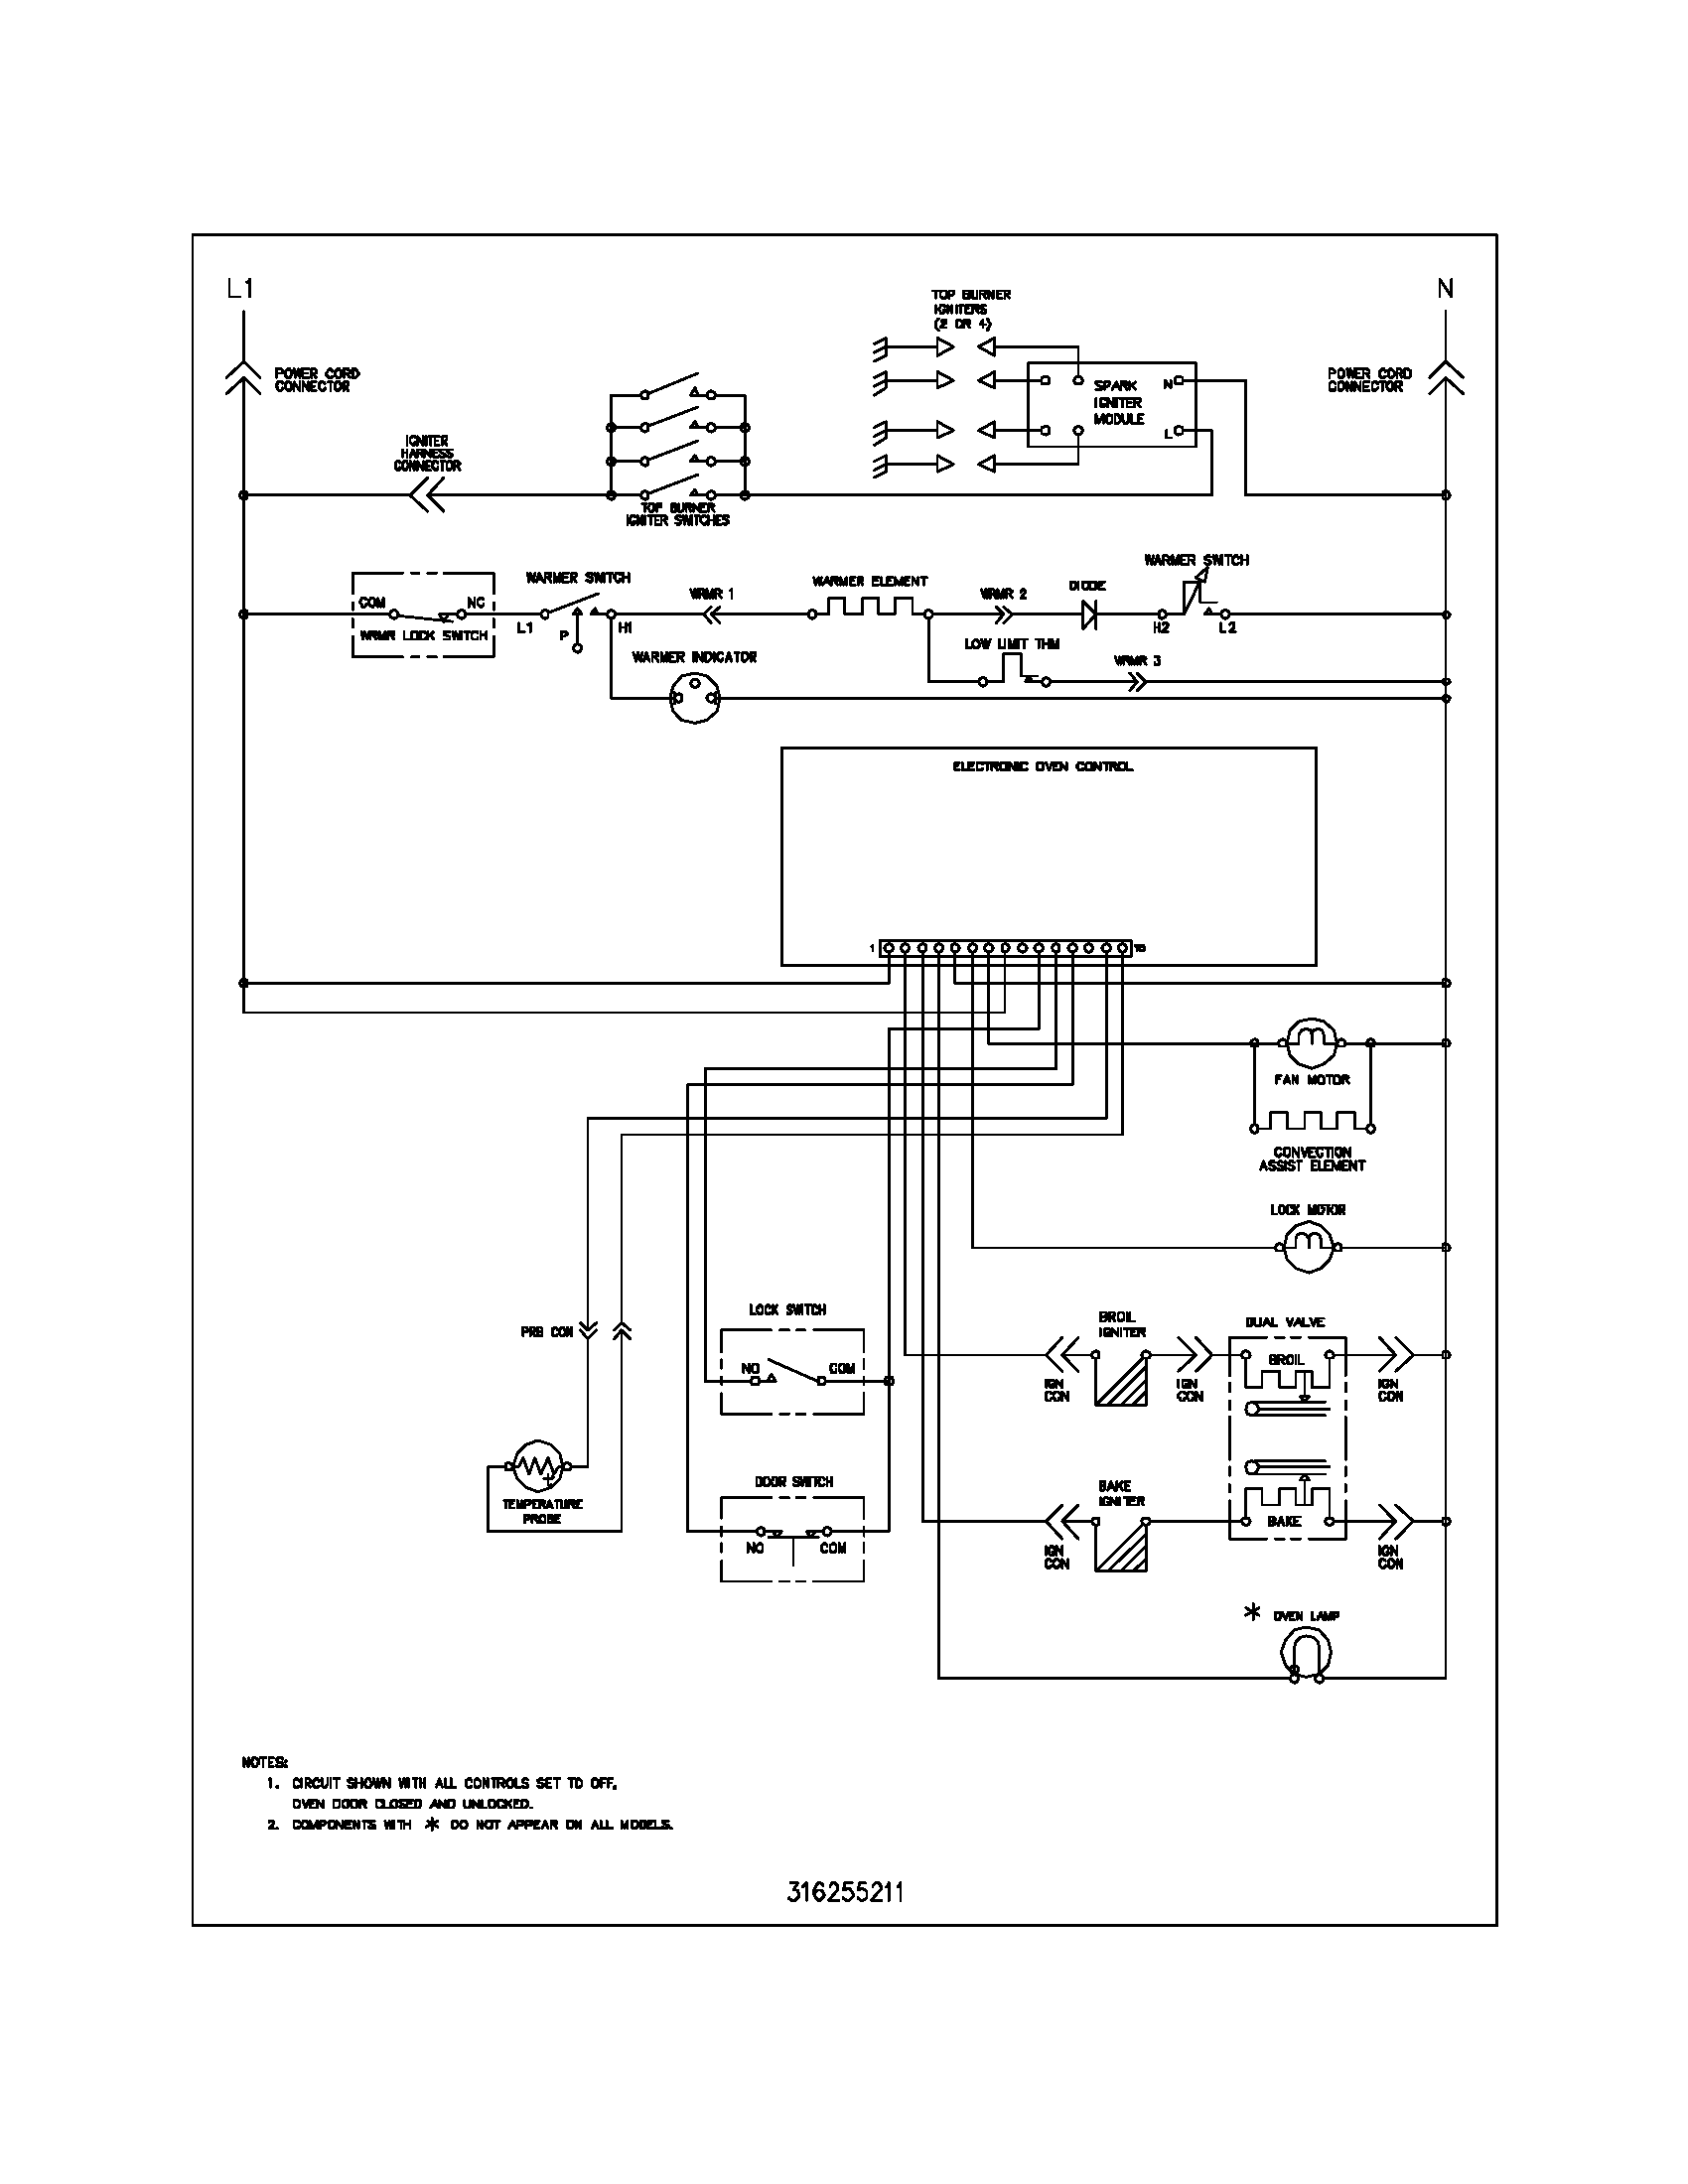 buck stove wiring diagram gas fireplace wiring diagram gas image wiring diagram gas fireplace thermostat wiring junsa us on gas